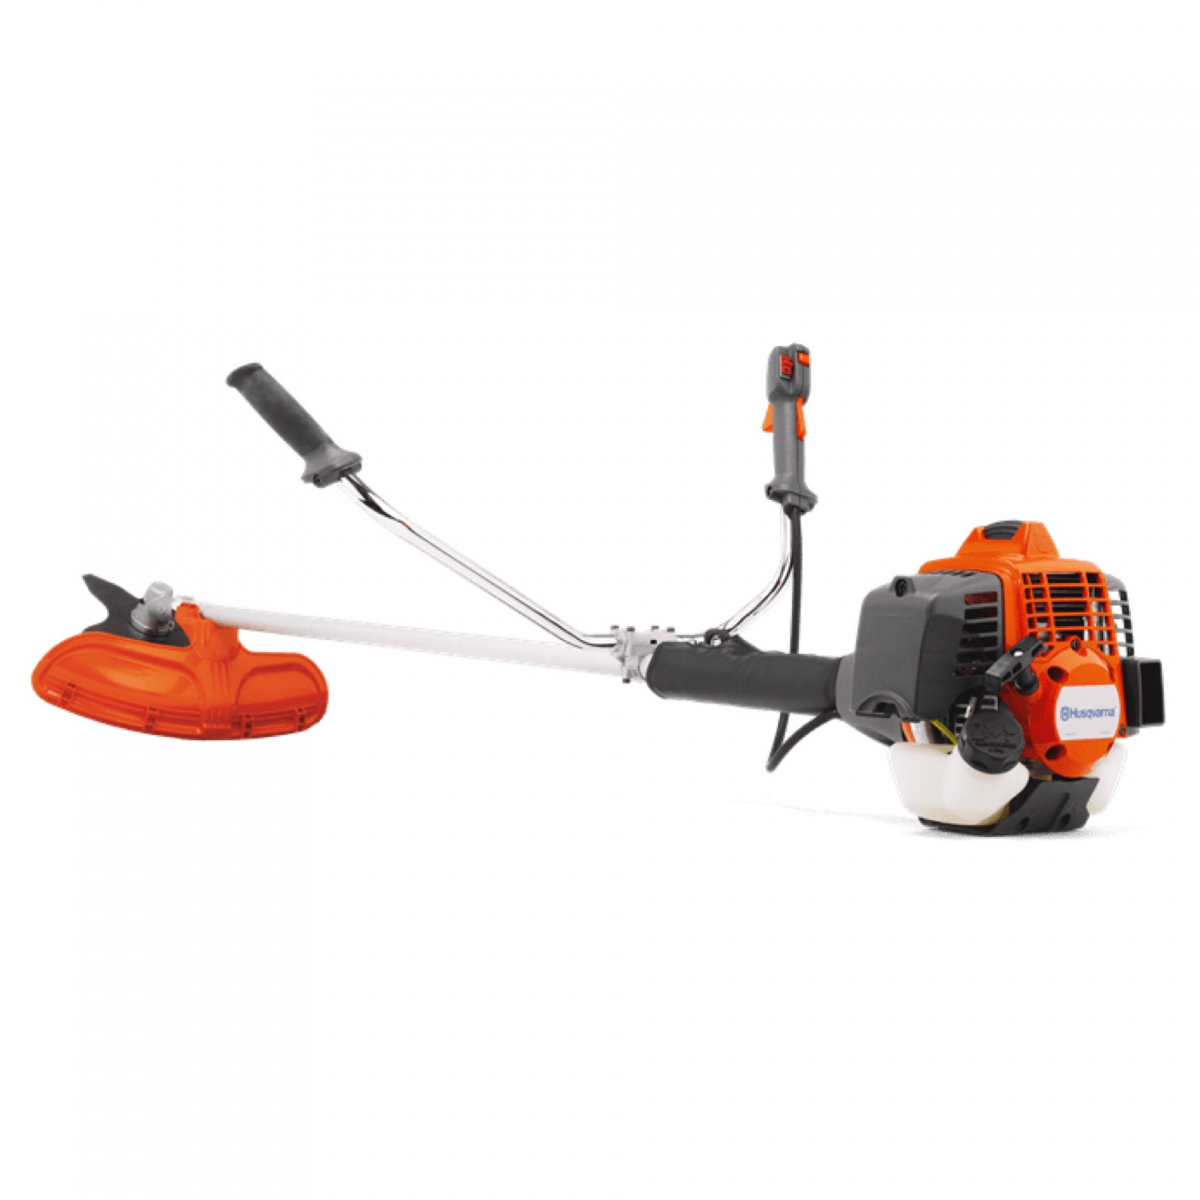 Husqvarna 543RS Petrol-powered Brushcutter